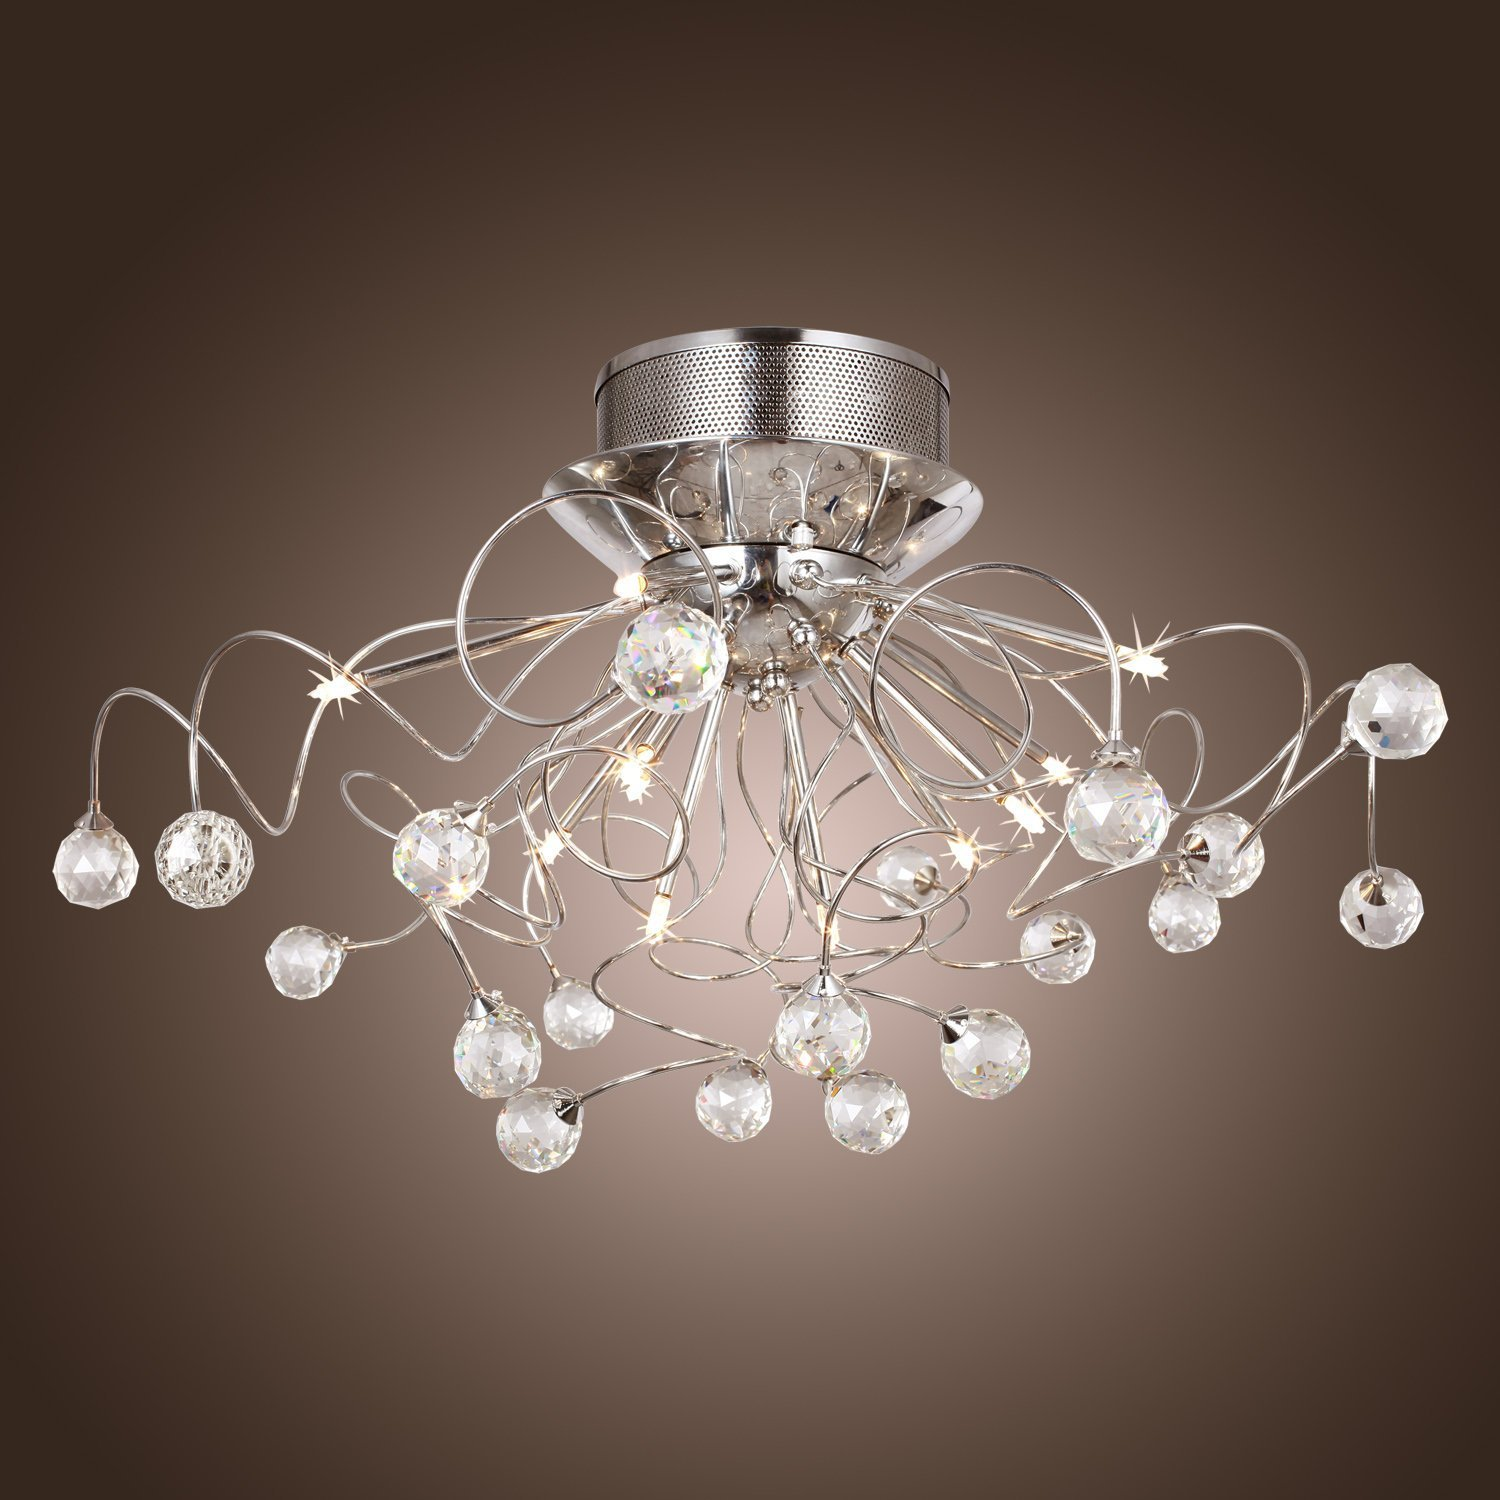 Alfred with crystal chandelier with 11 lights chrome modern alfred with crystal chandelier with 11 lights chrome modern modern chandeliers flush mount ceiling light fixture for hall entrance bedroom aloadofball Images